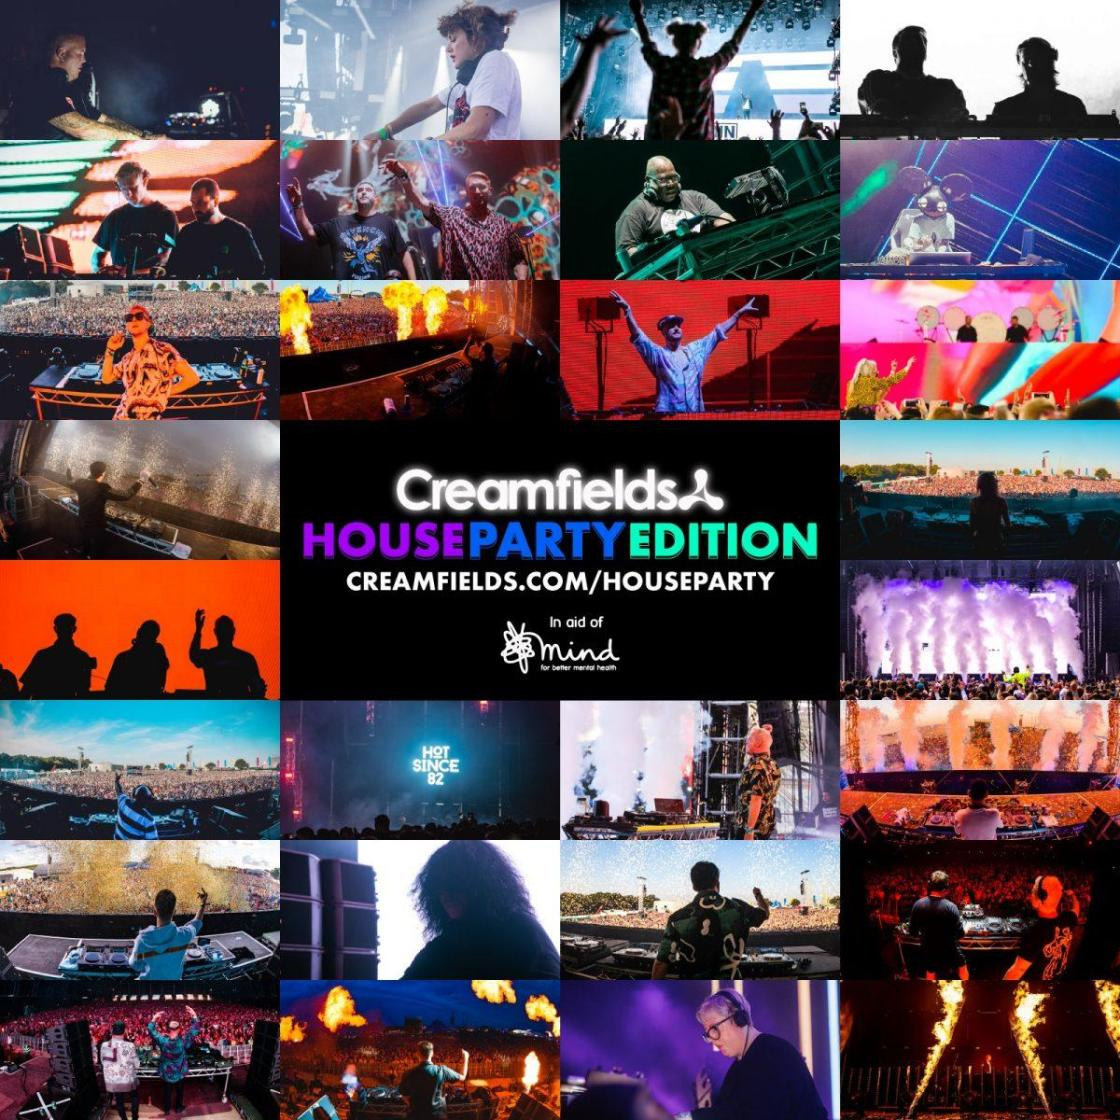 Strap yourselves in for #CreamfieldsHouseParty! Kicking things off from 12pm thi...